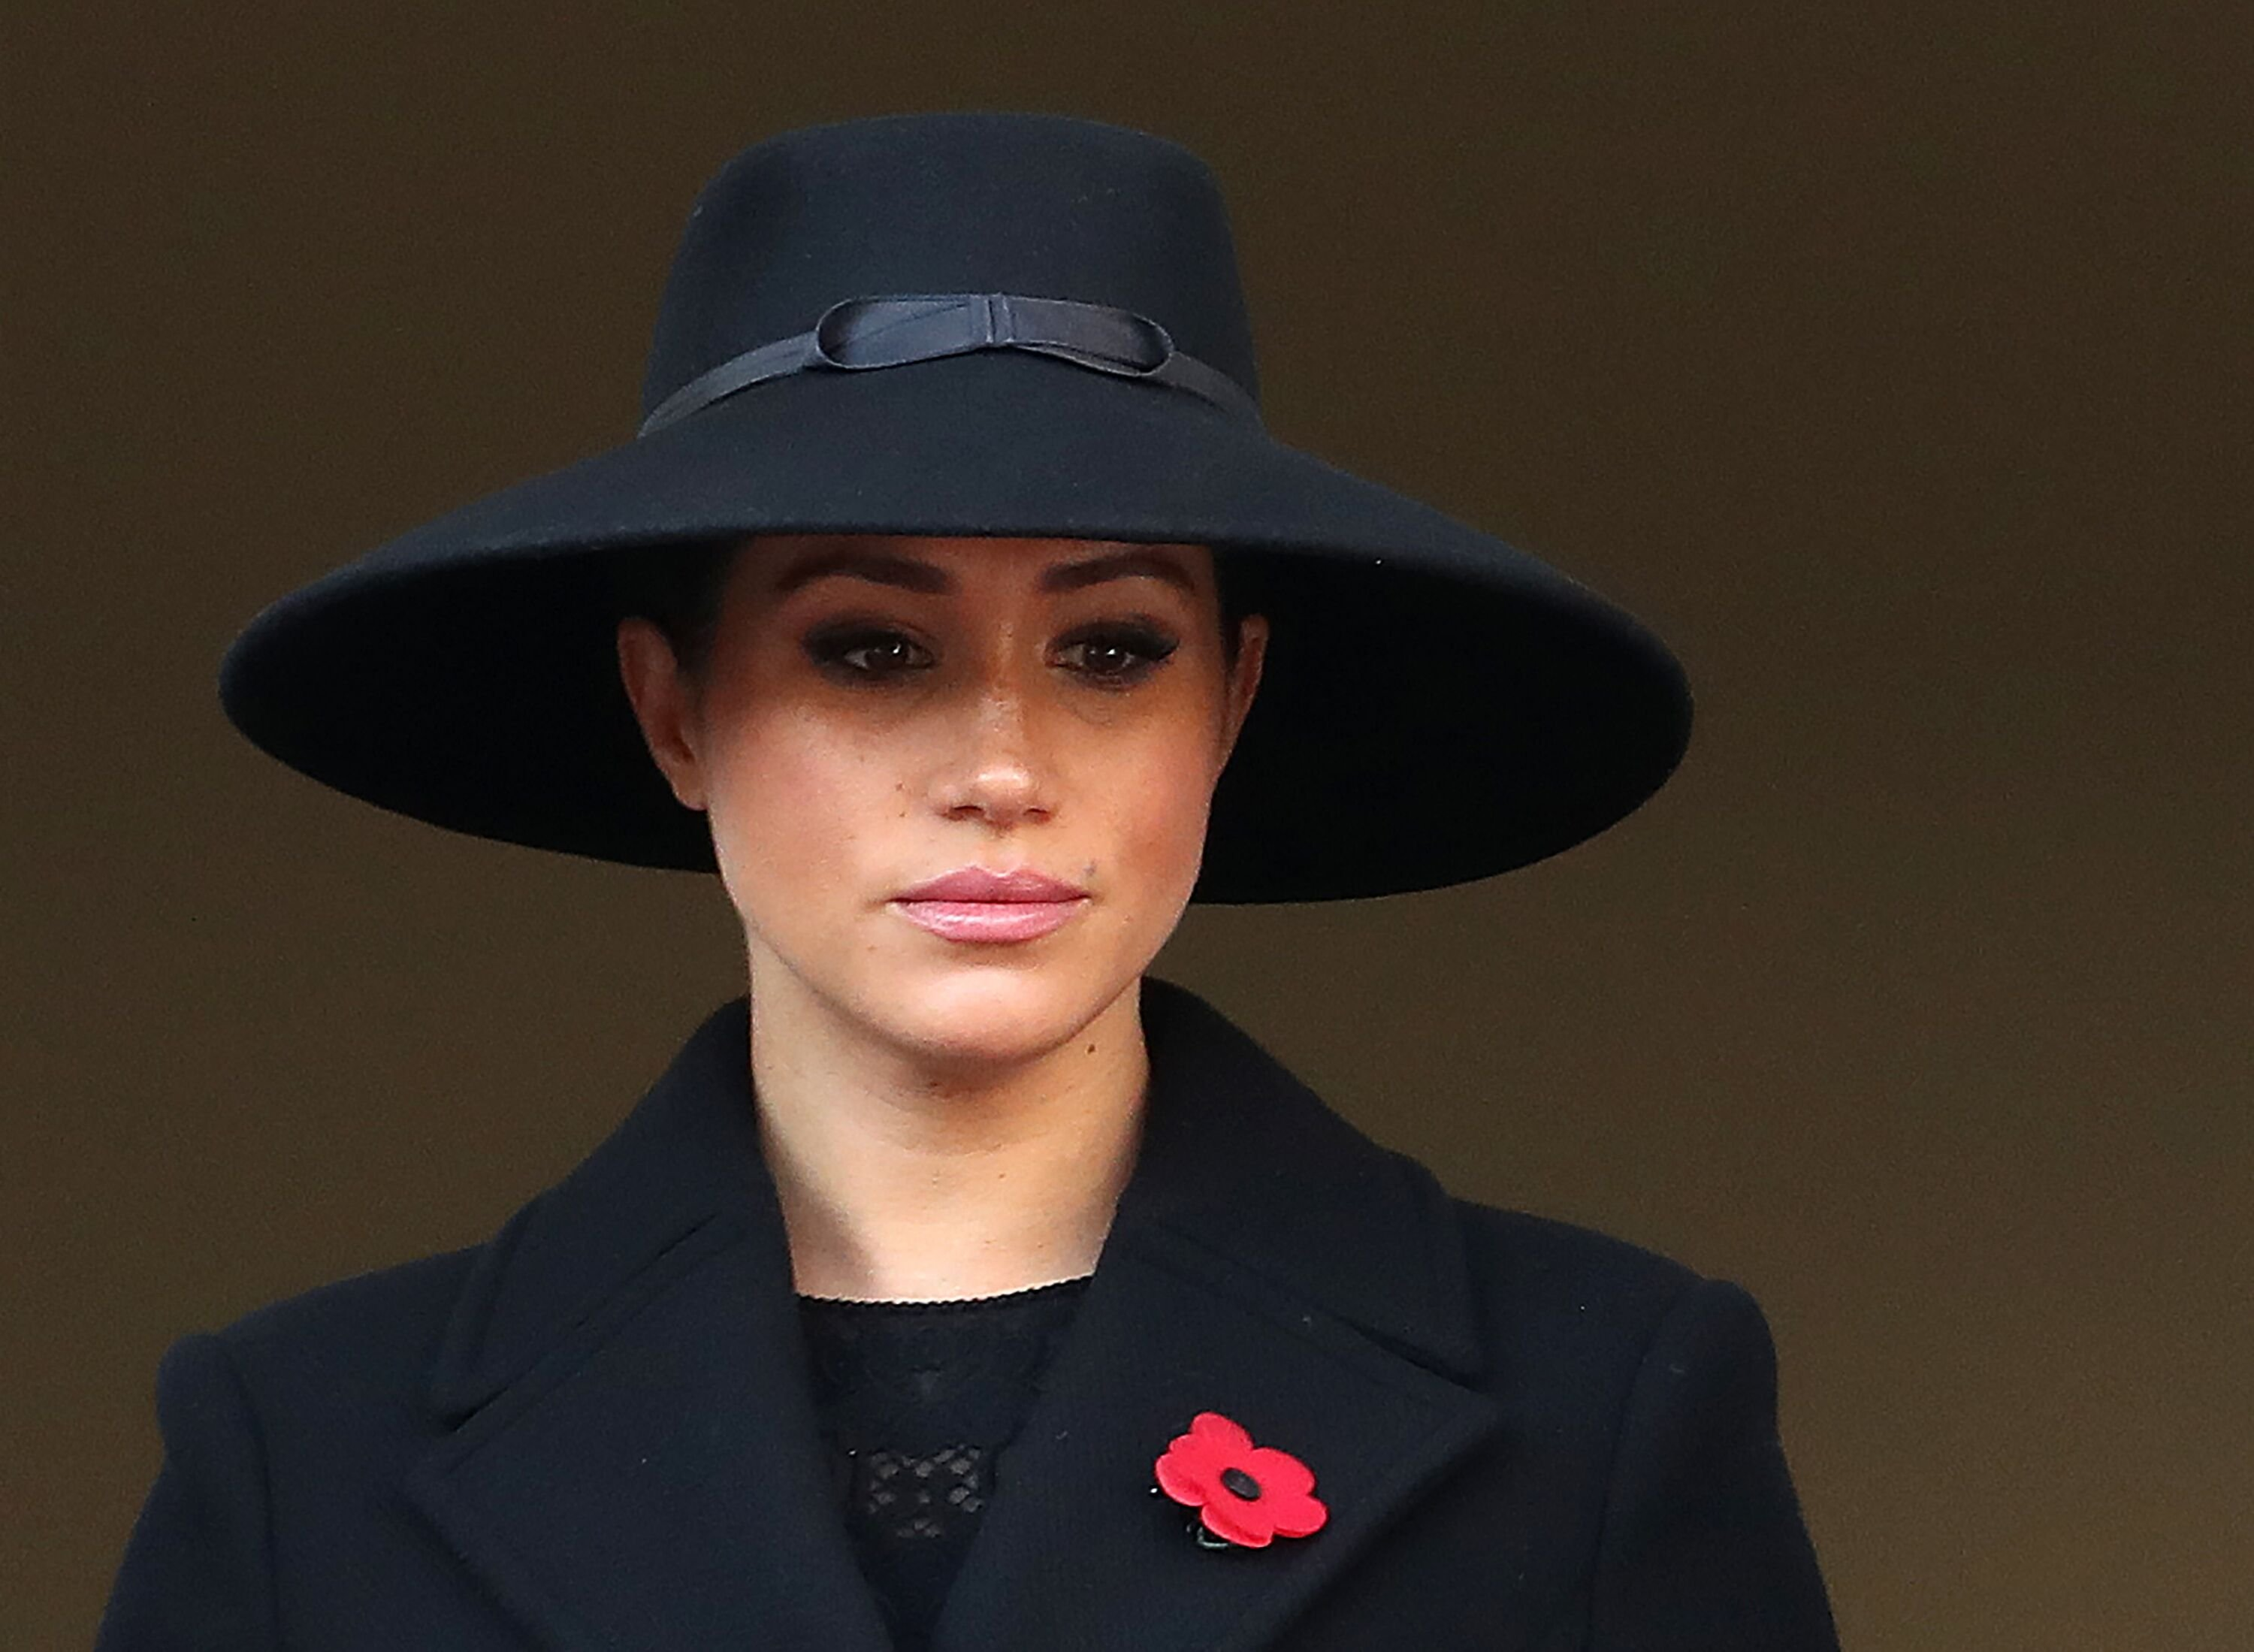 Meghan Markle at the annual Remembrance Sunday memorial on November 10, 2019, in London, England. | Source: Getty Images